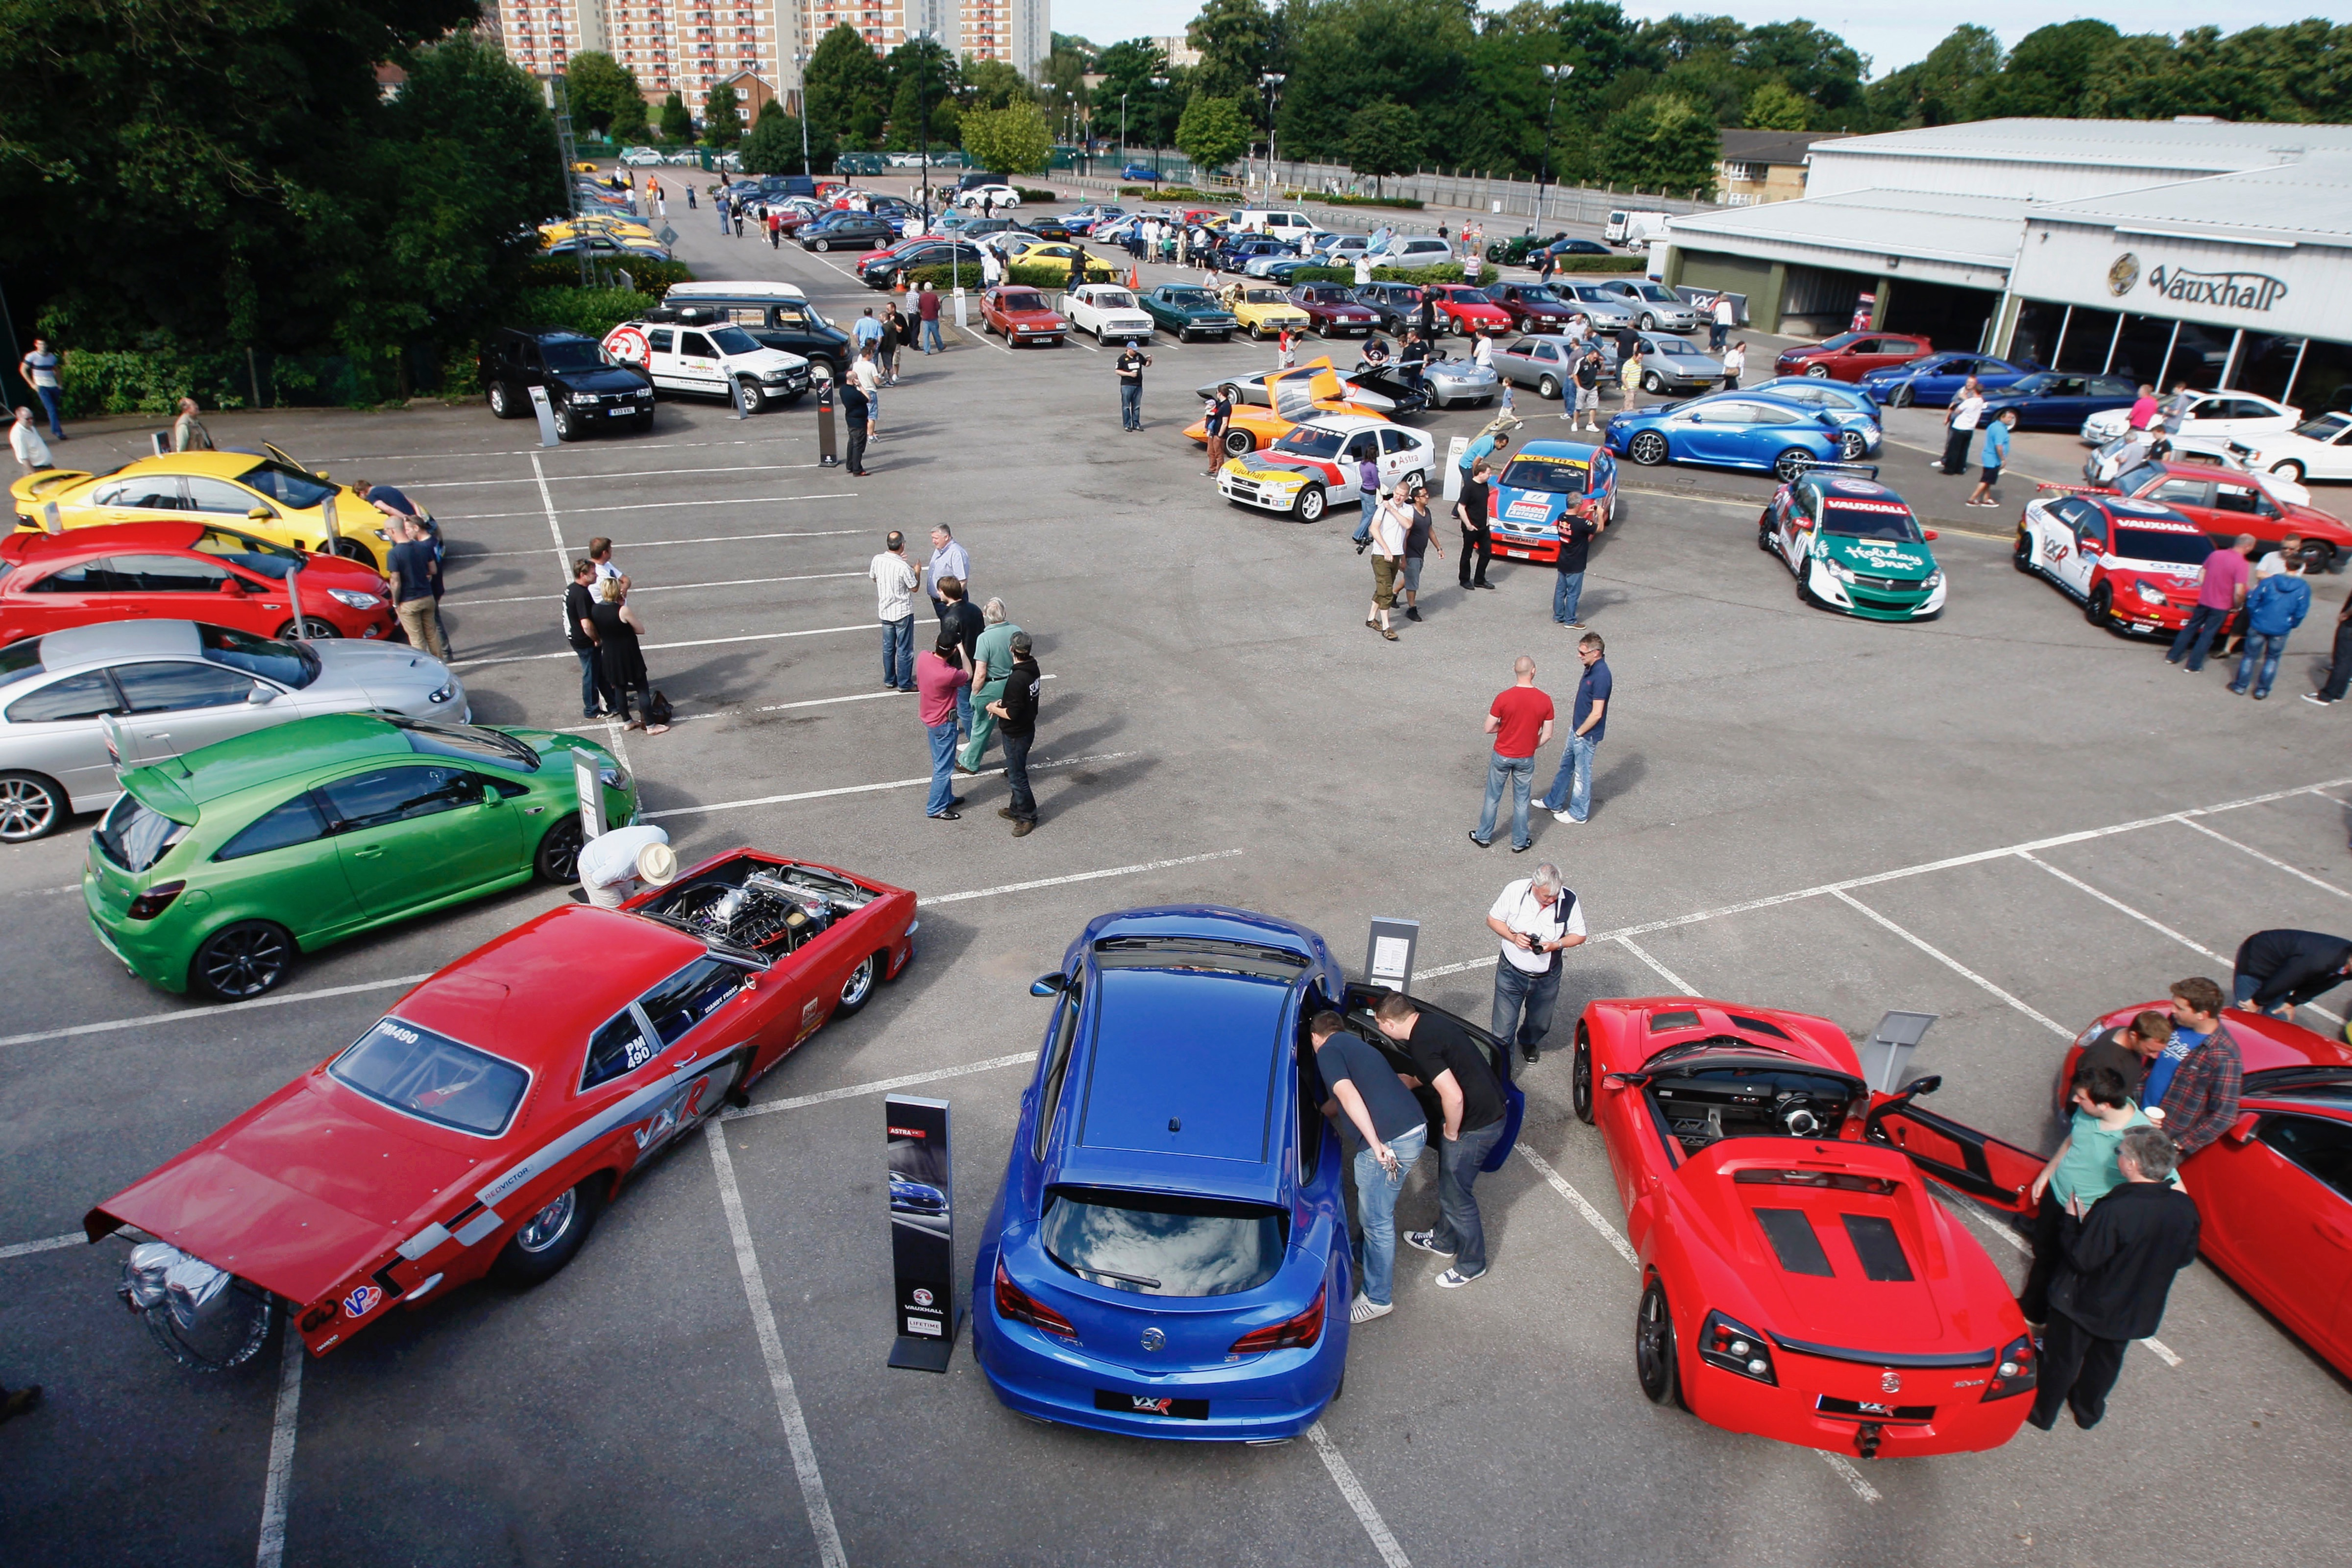 car museum, 'Time Travel' offered at Gilmore museum, ClassicCars.com Journal